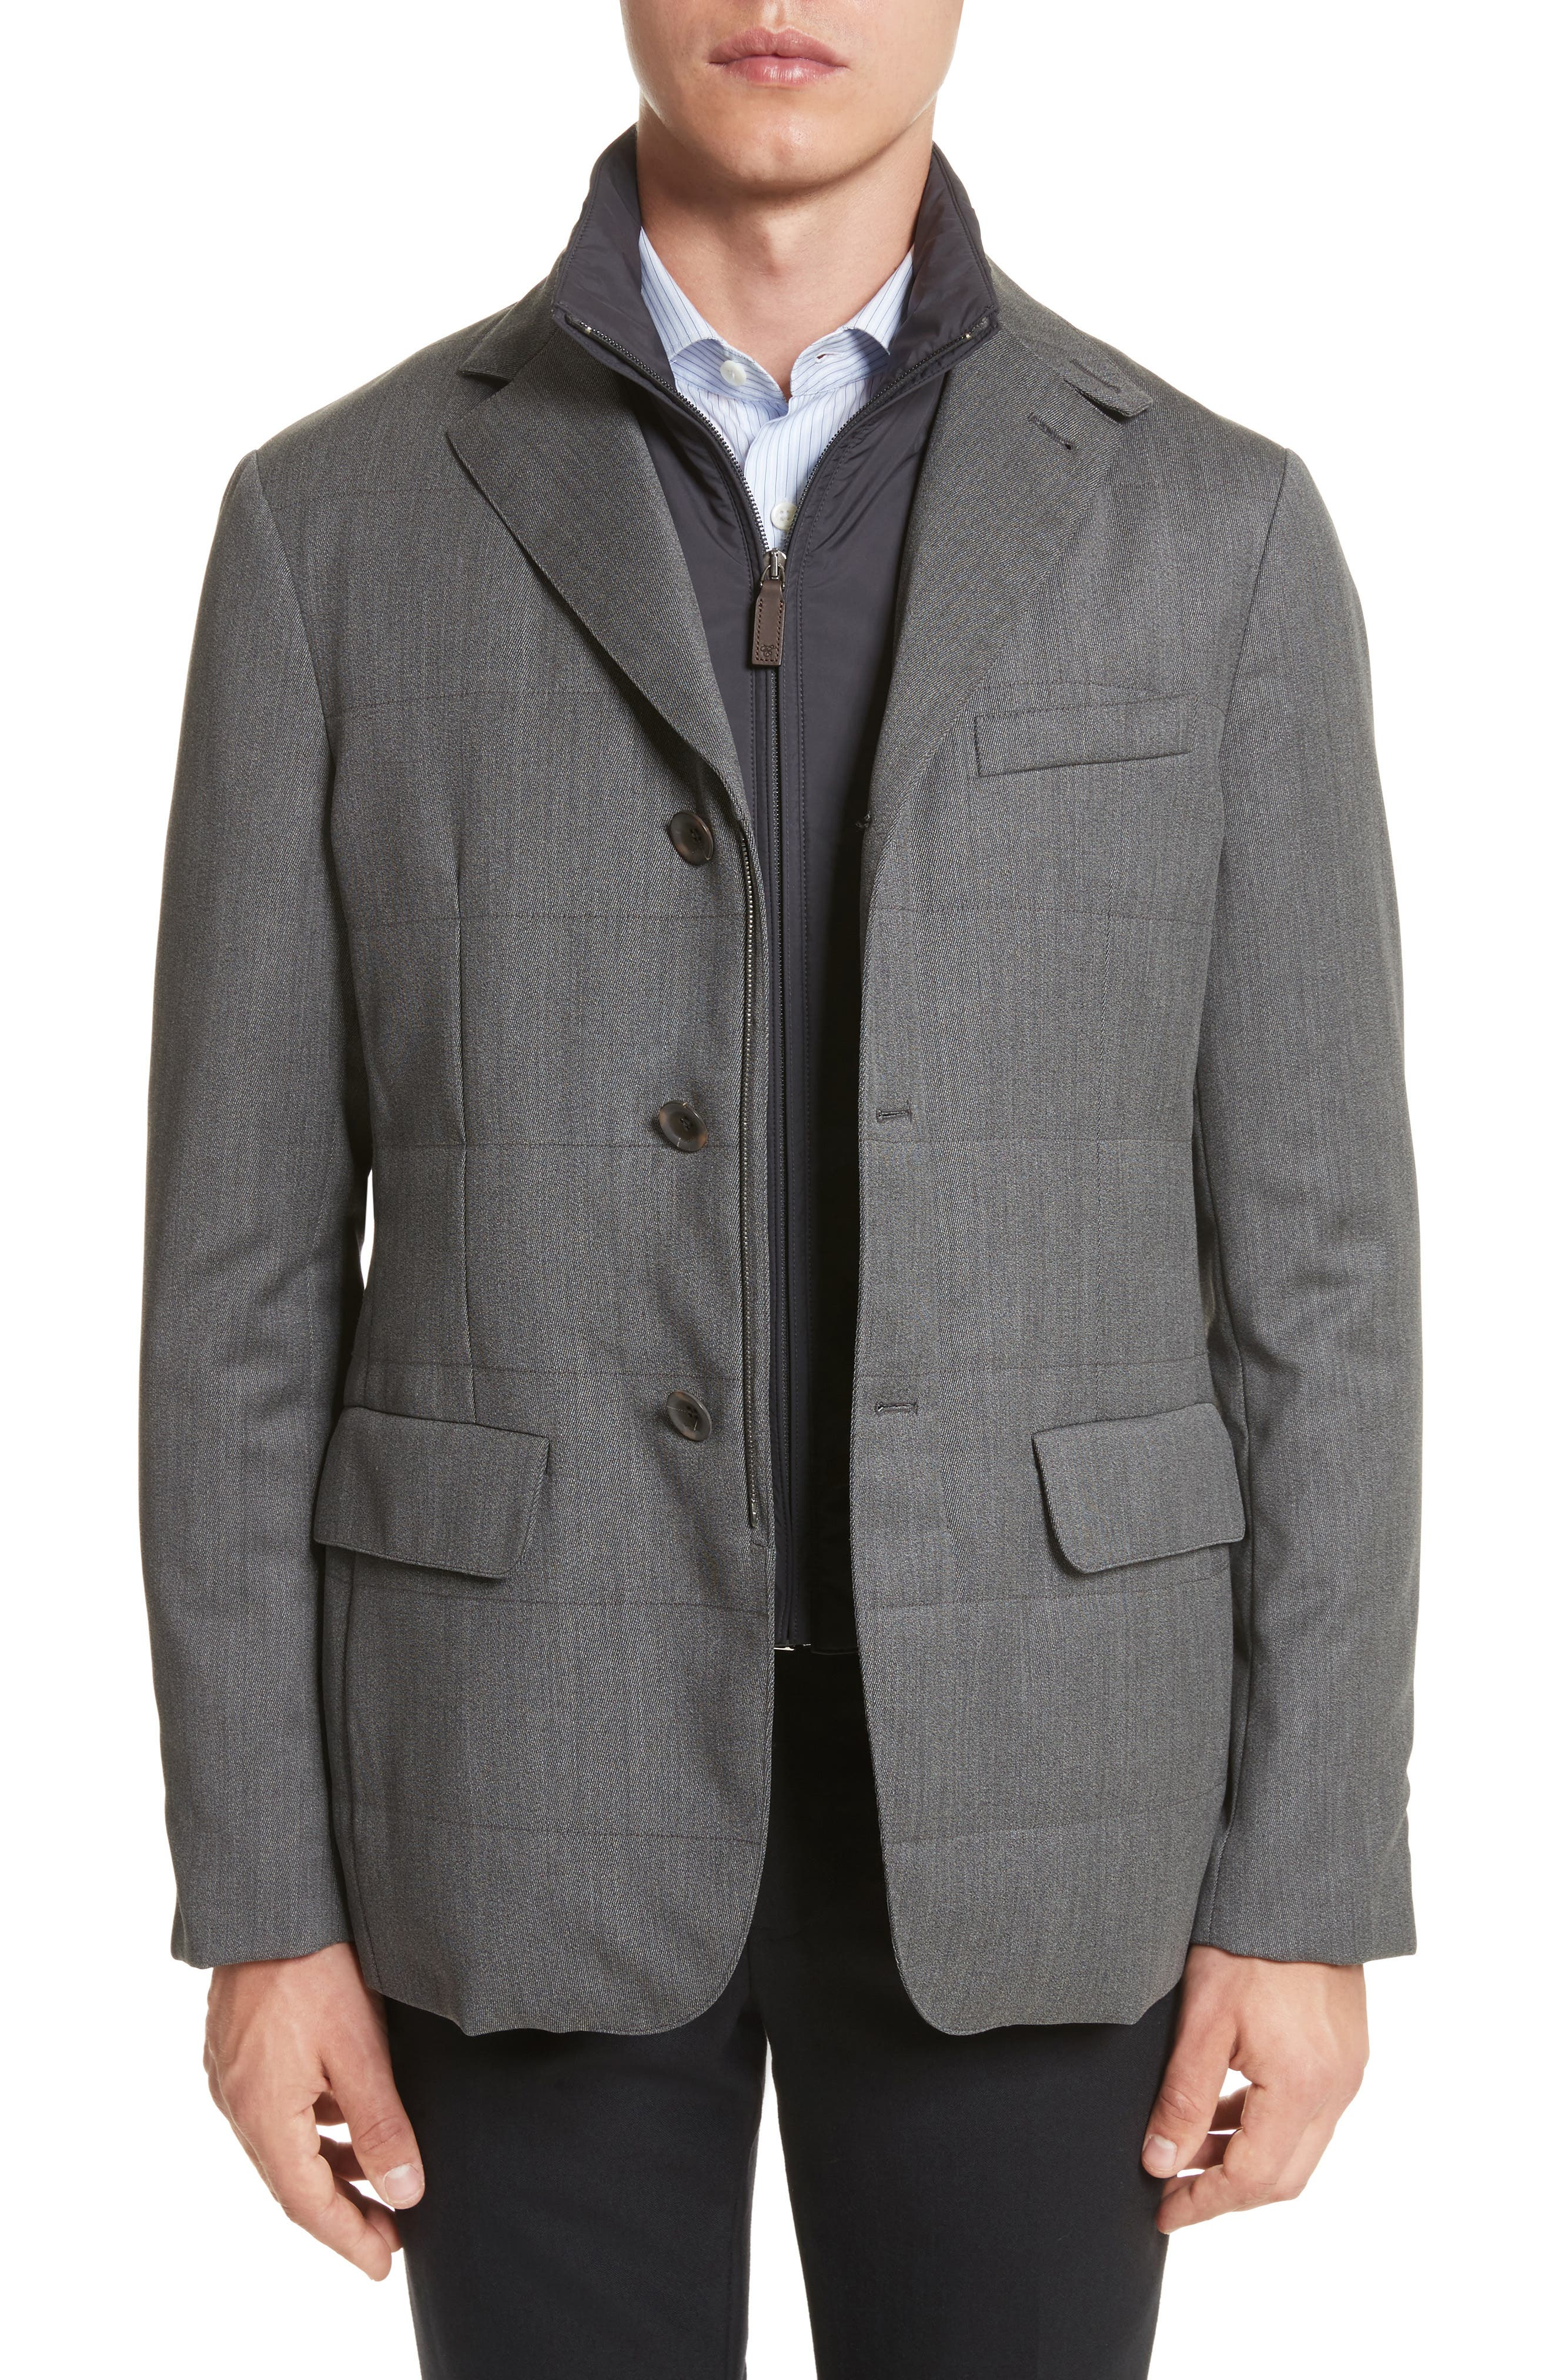 Main Image - Canali Water-Resistant Wool Jacket with Bib